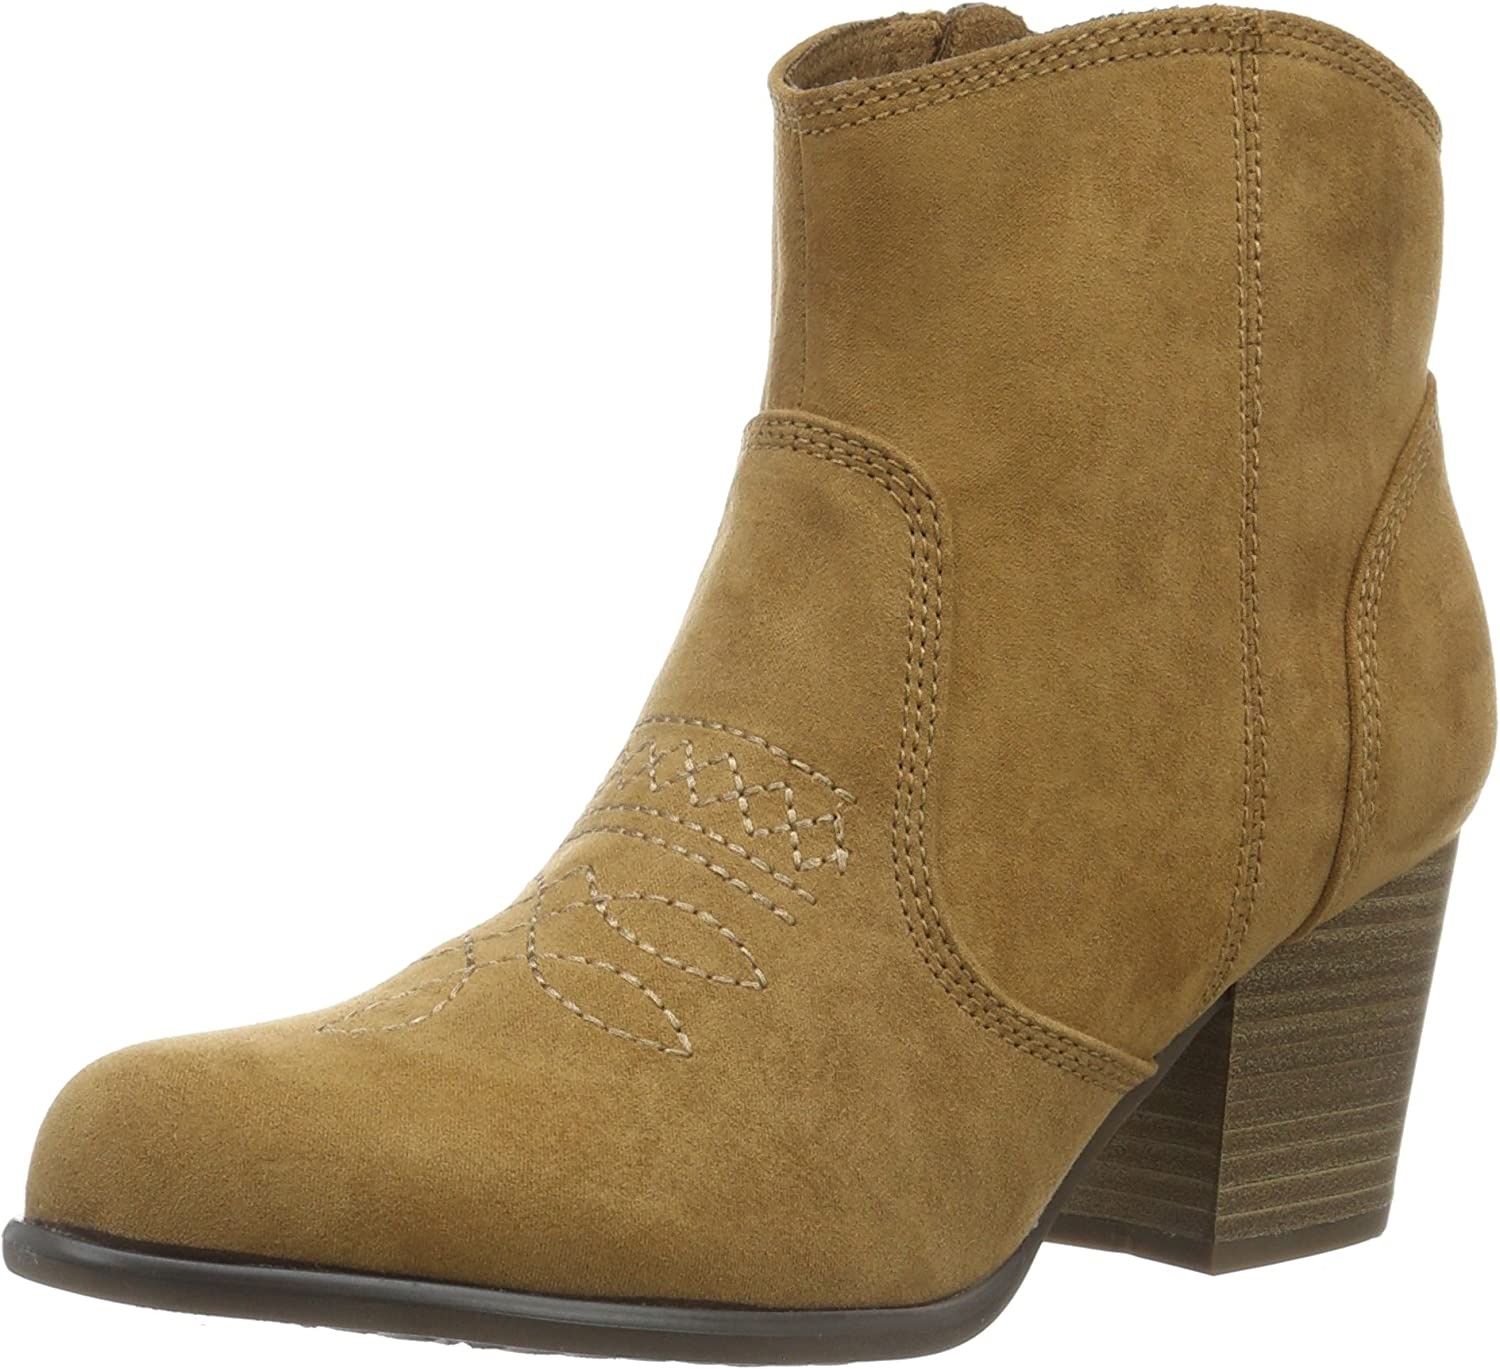 S.Oliver Women's Camel Brown Mid Heel Ankle Boot